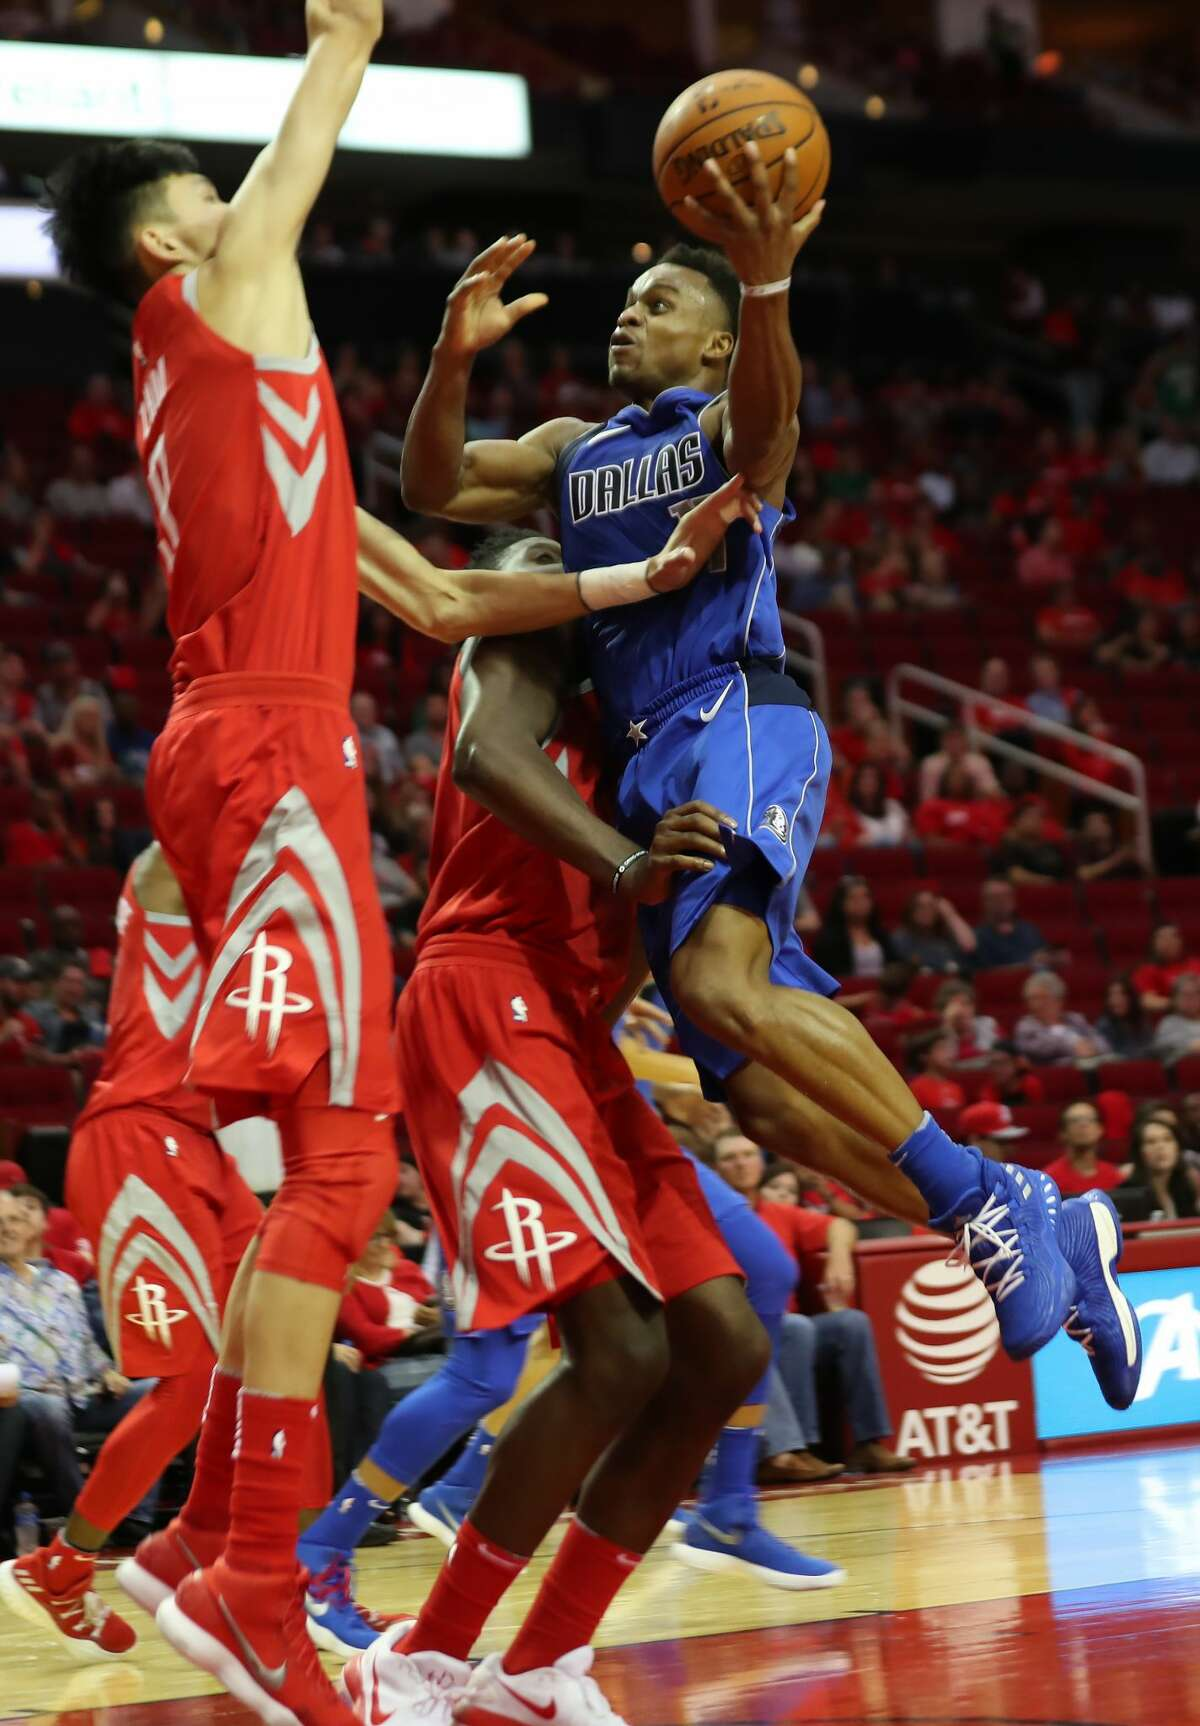 Dallas Mavericks guard Yogi Ferrell (11) shoots the ball under the pressure of Houston Rockets forward Zhou Qi (9) during the second half of the game, Saturday, Oct. 21, 2017, at the Toyota Center in Houston. ( Marie D. De Jesus / Houston Chronicle )